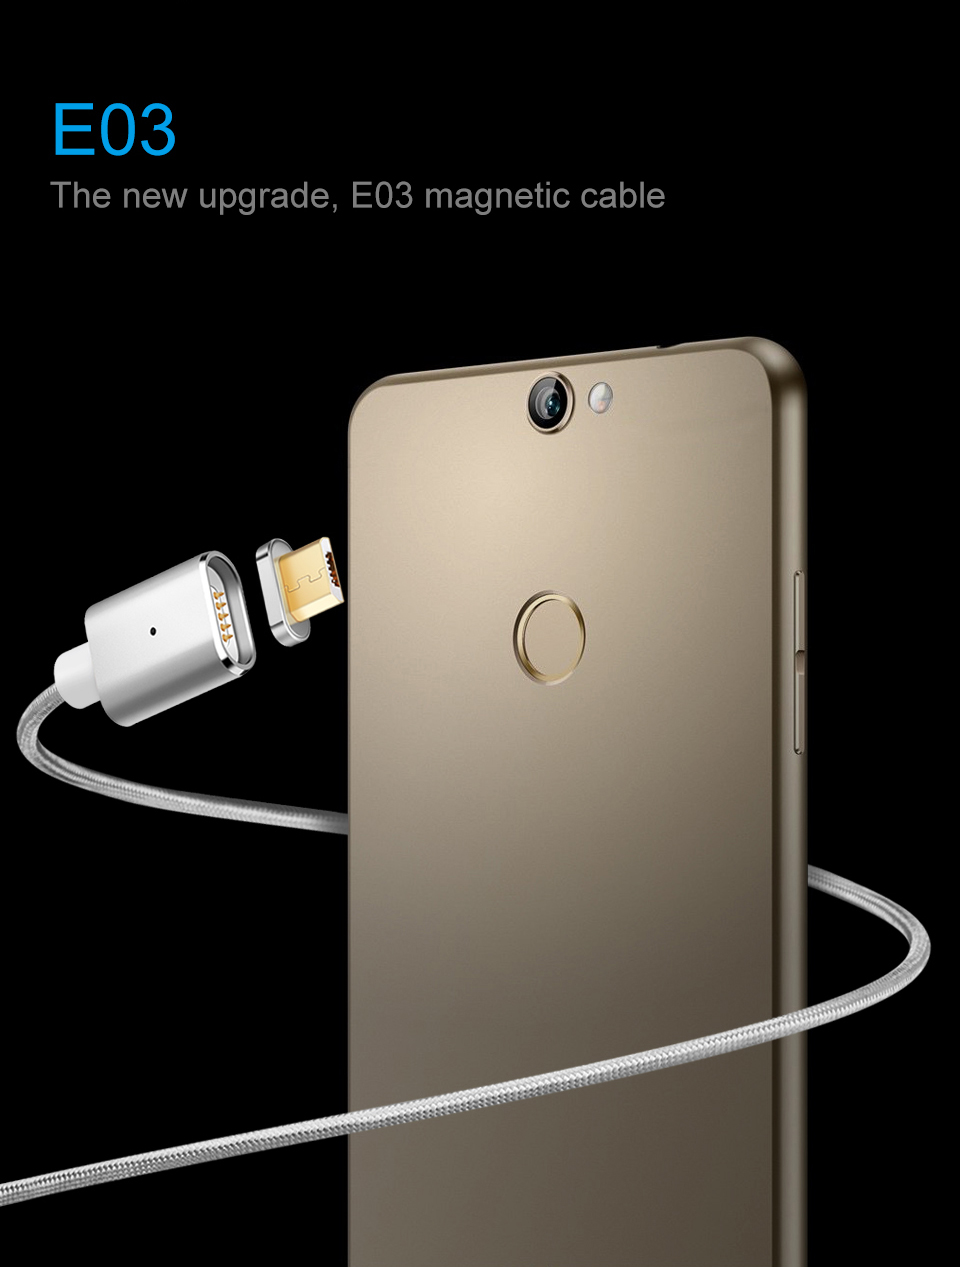 Elough E03 Magnetic Micro USB Cable Charger For Fast Charging And Magnetic Data Cable For Phones 4